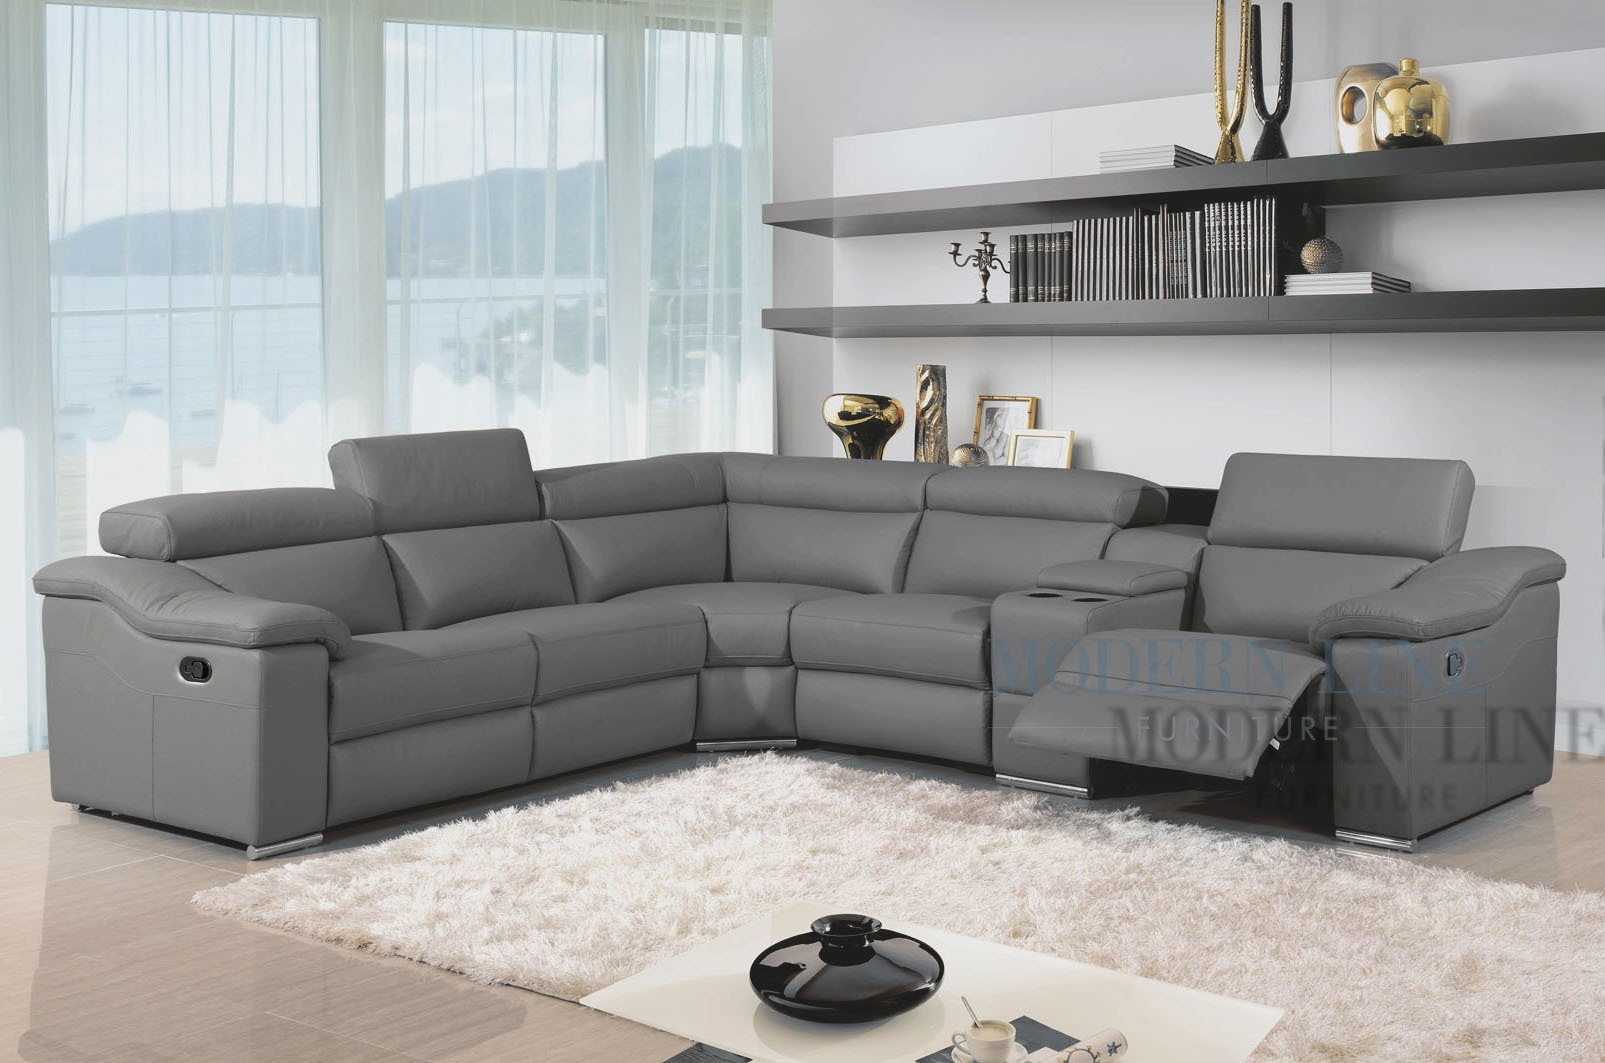 Home Decorators Collection Living Room Furniture Within Rooms To Inside Cindy Crawford Sofas (View 2 of 12)